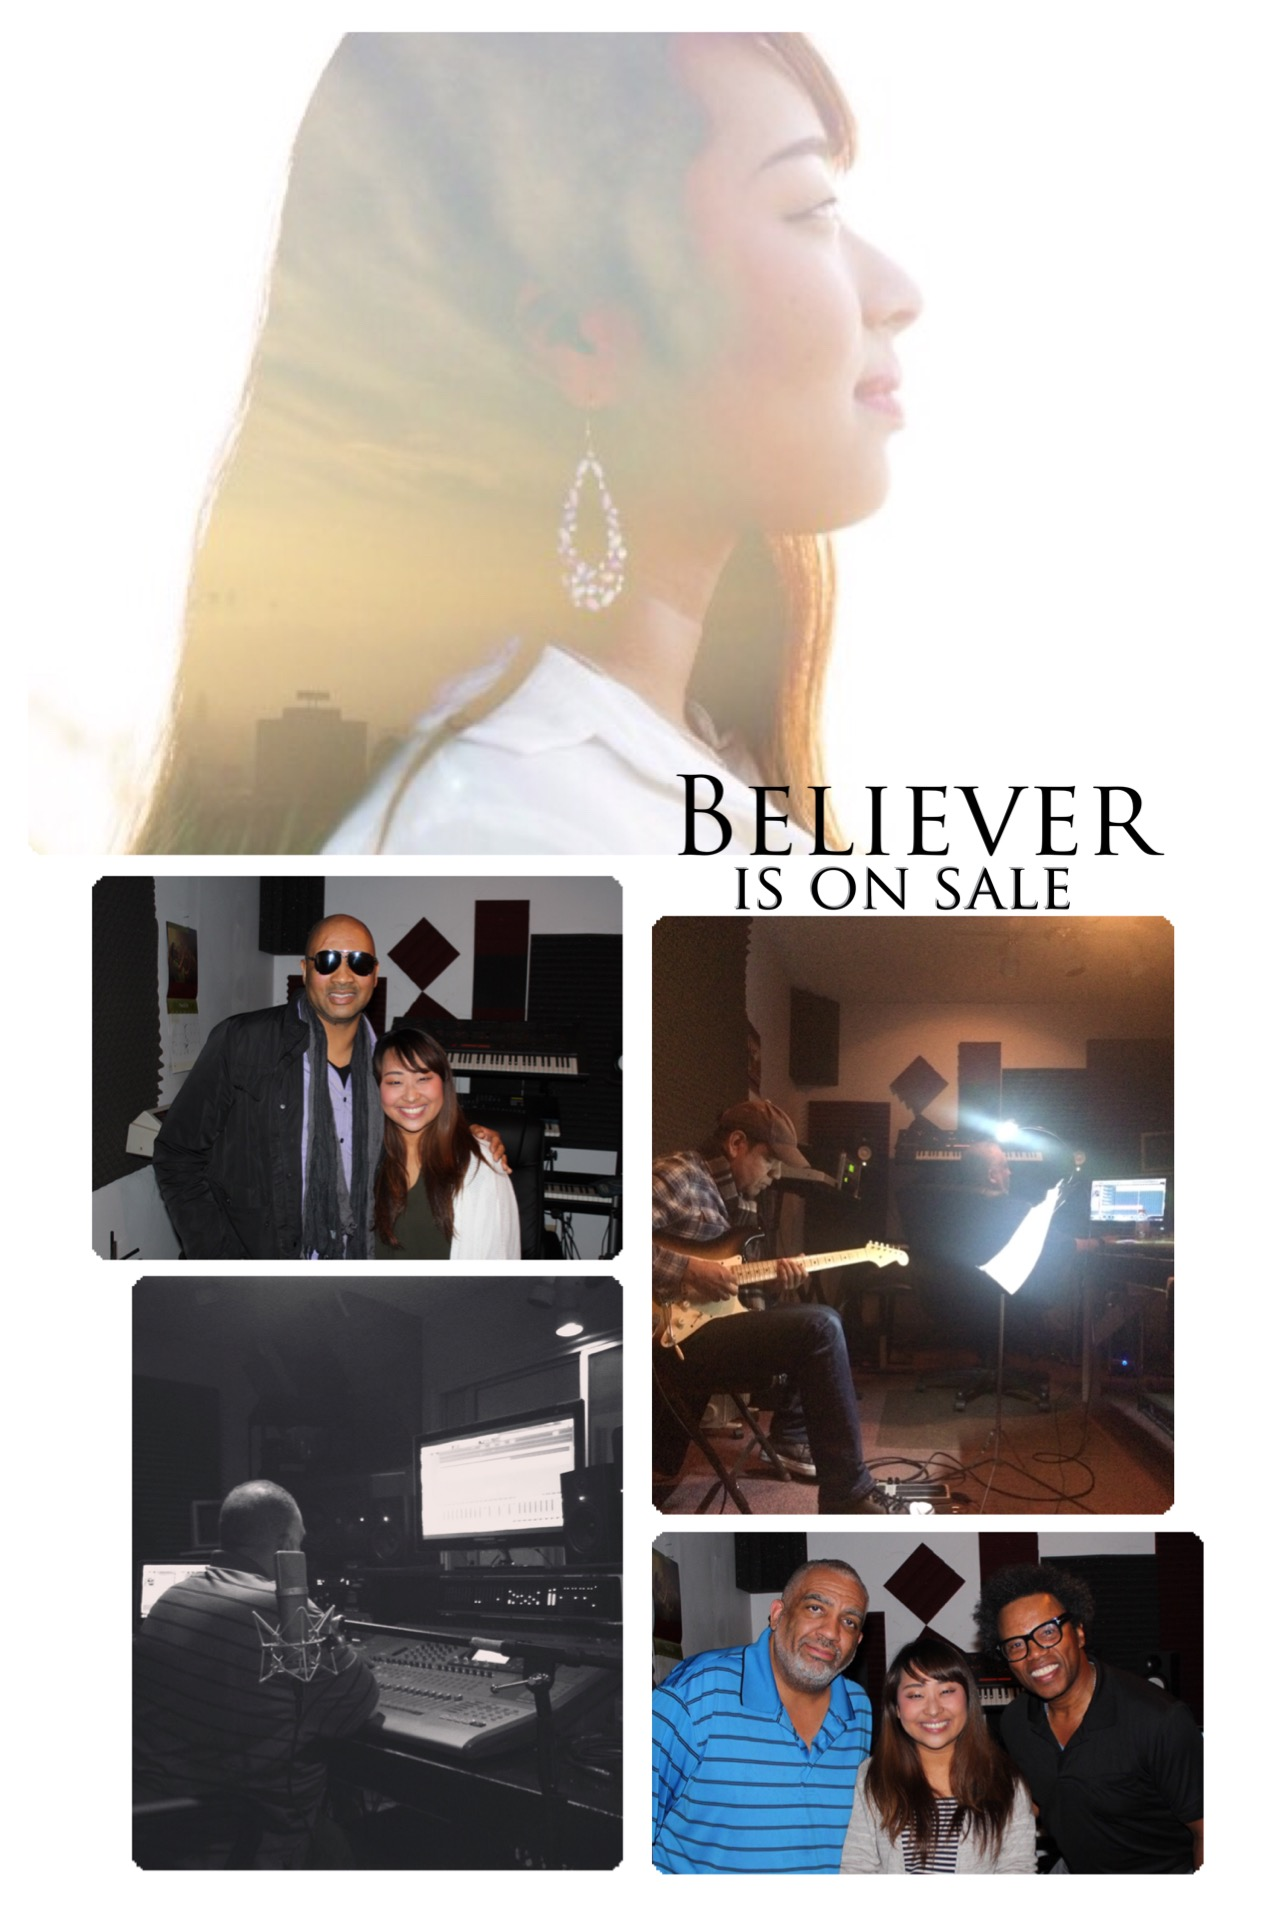 Believer album release